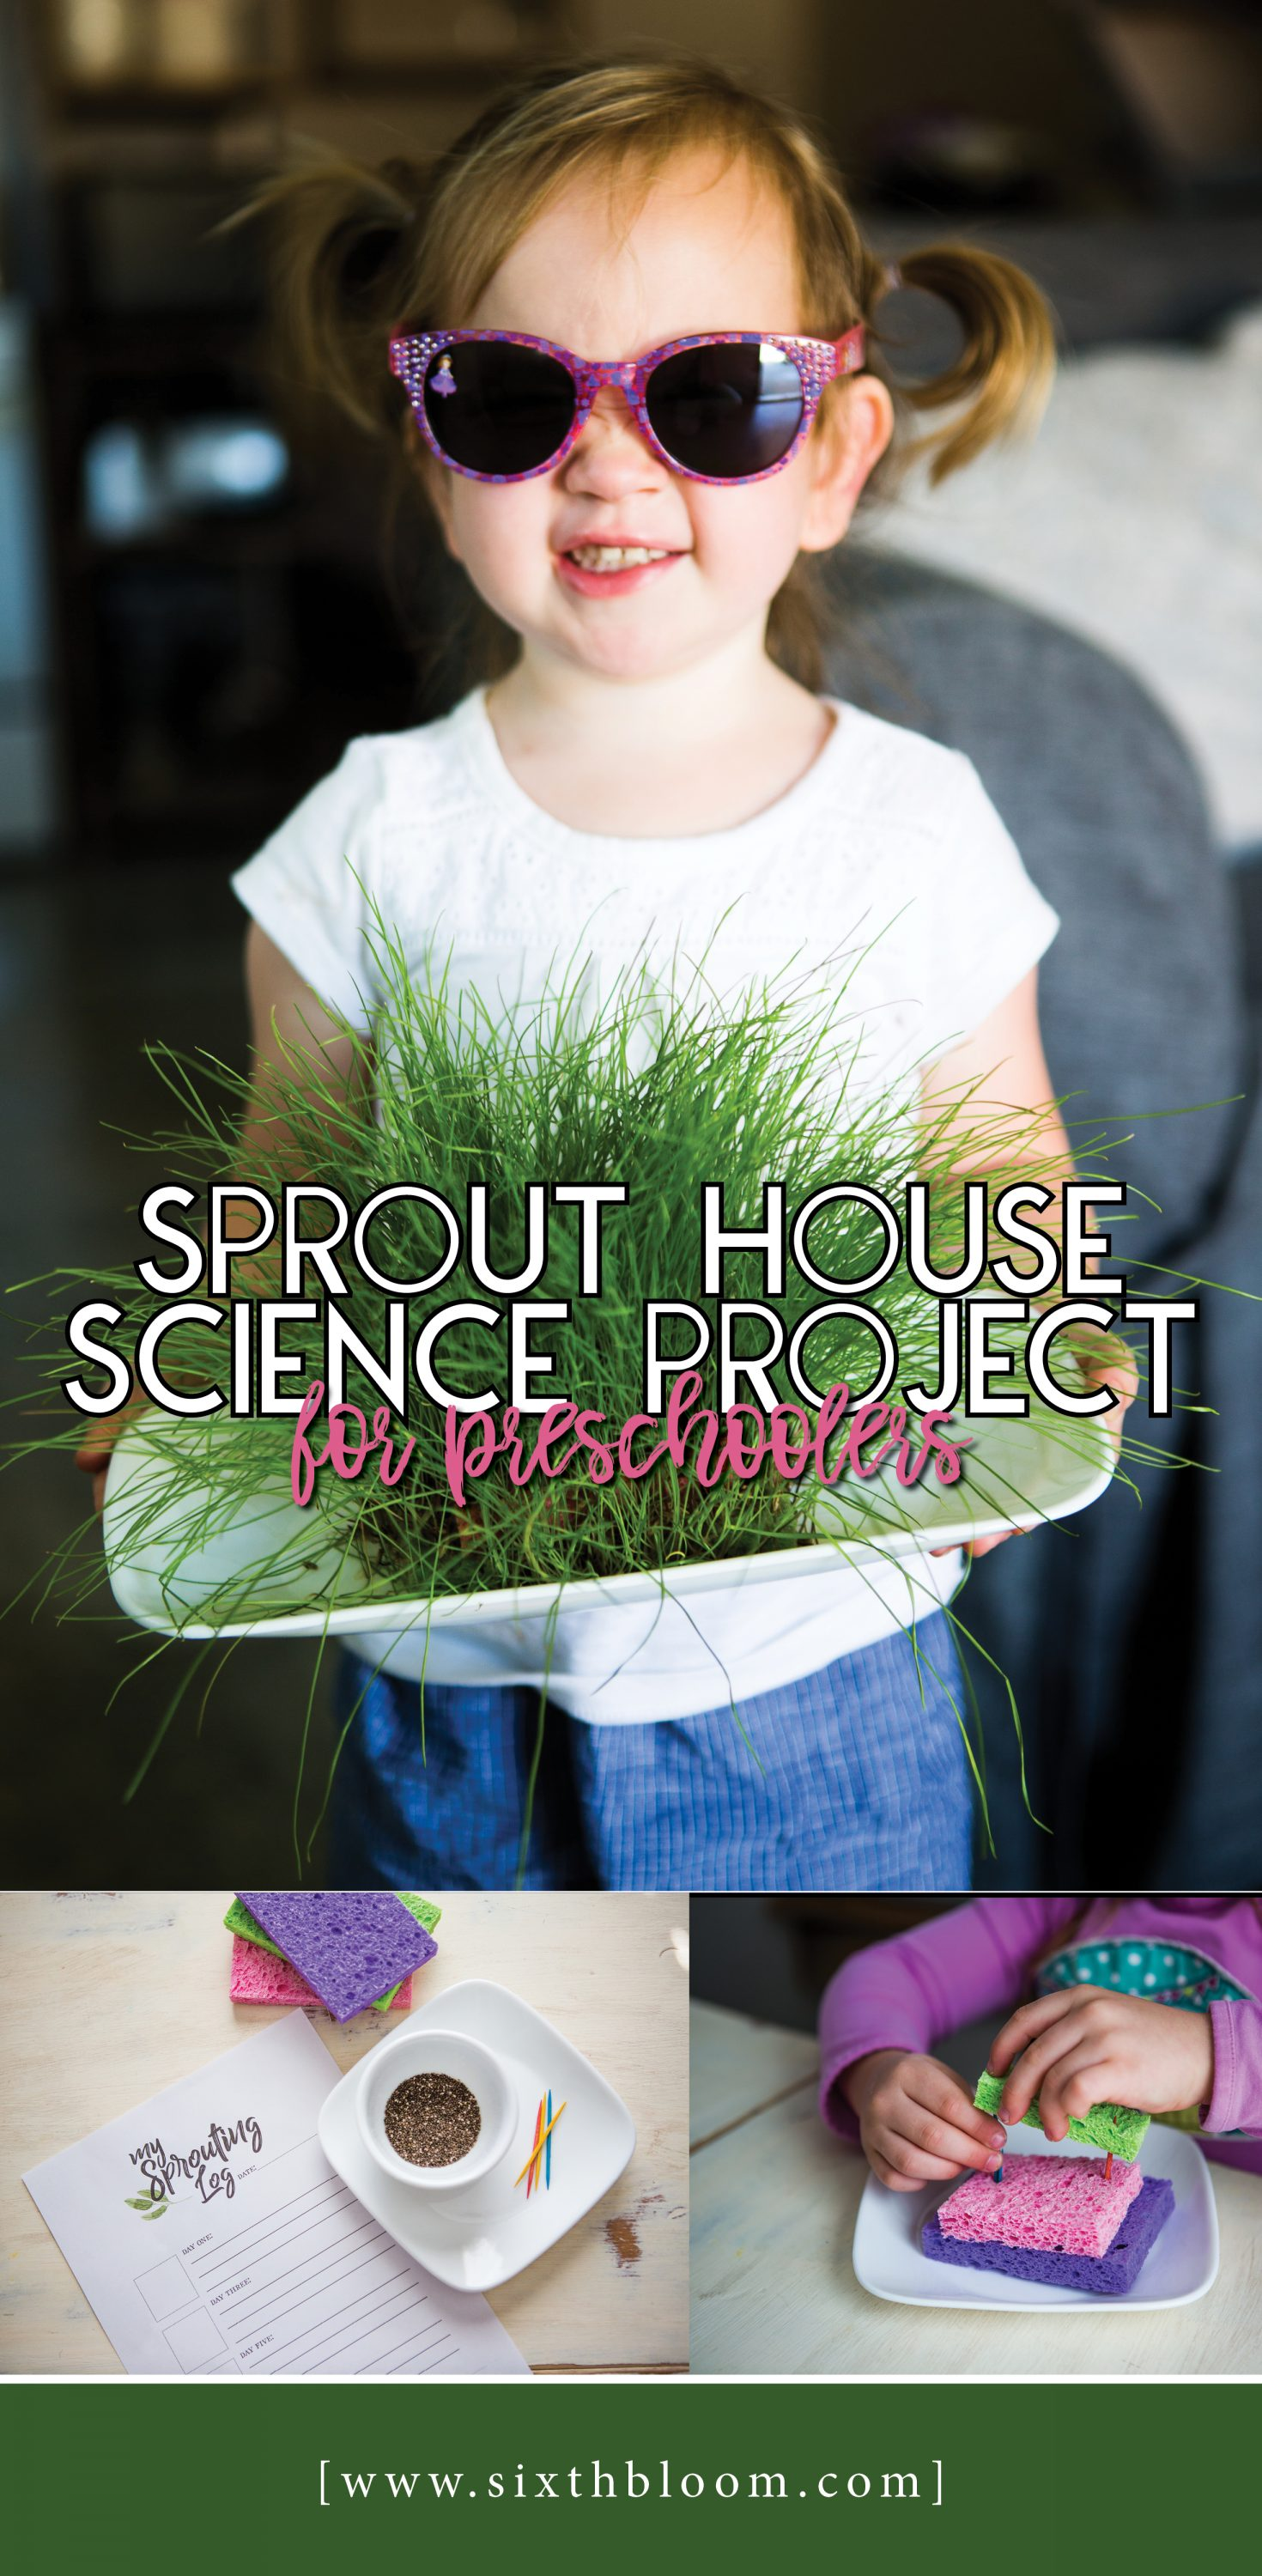 Sprout House Science Project for Preschoolers